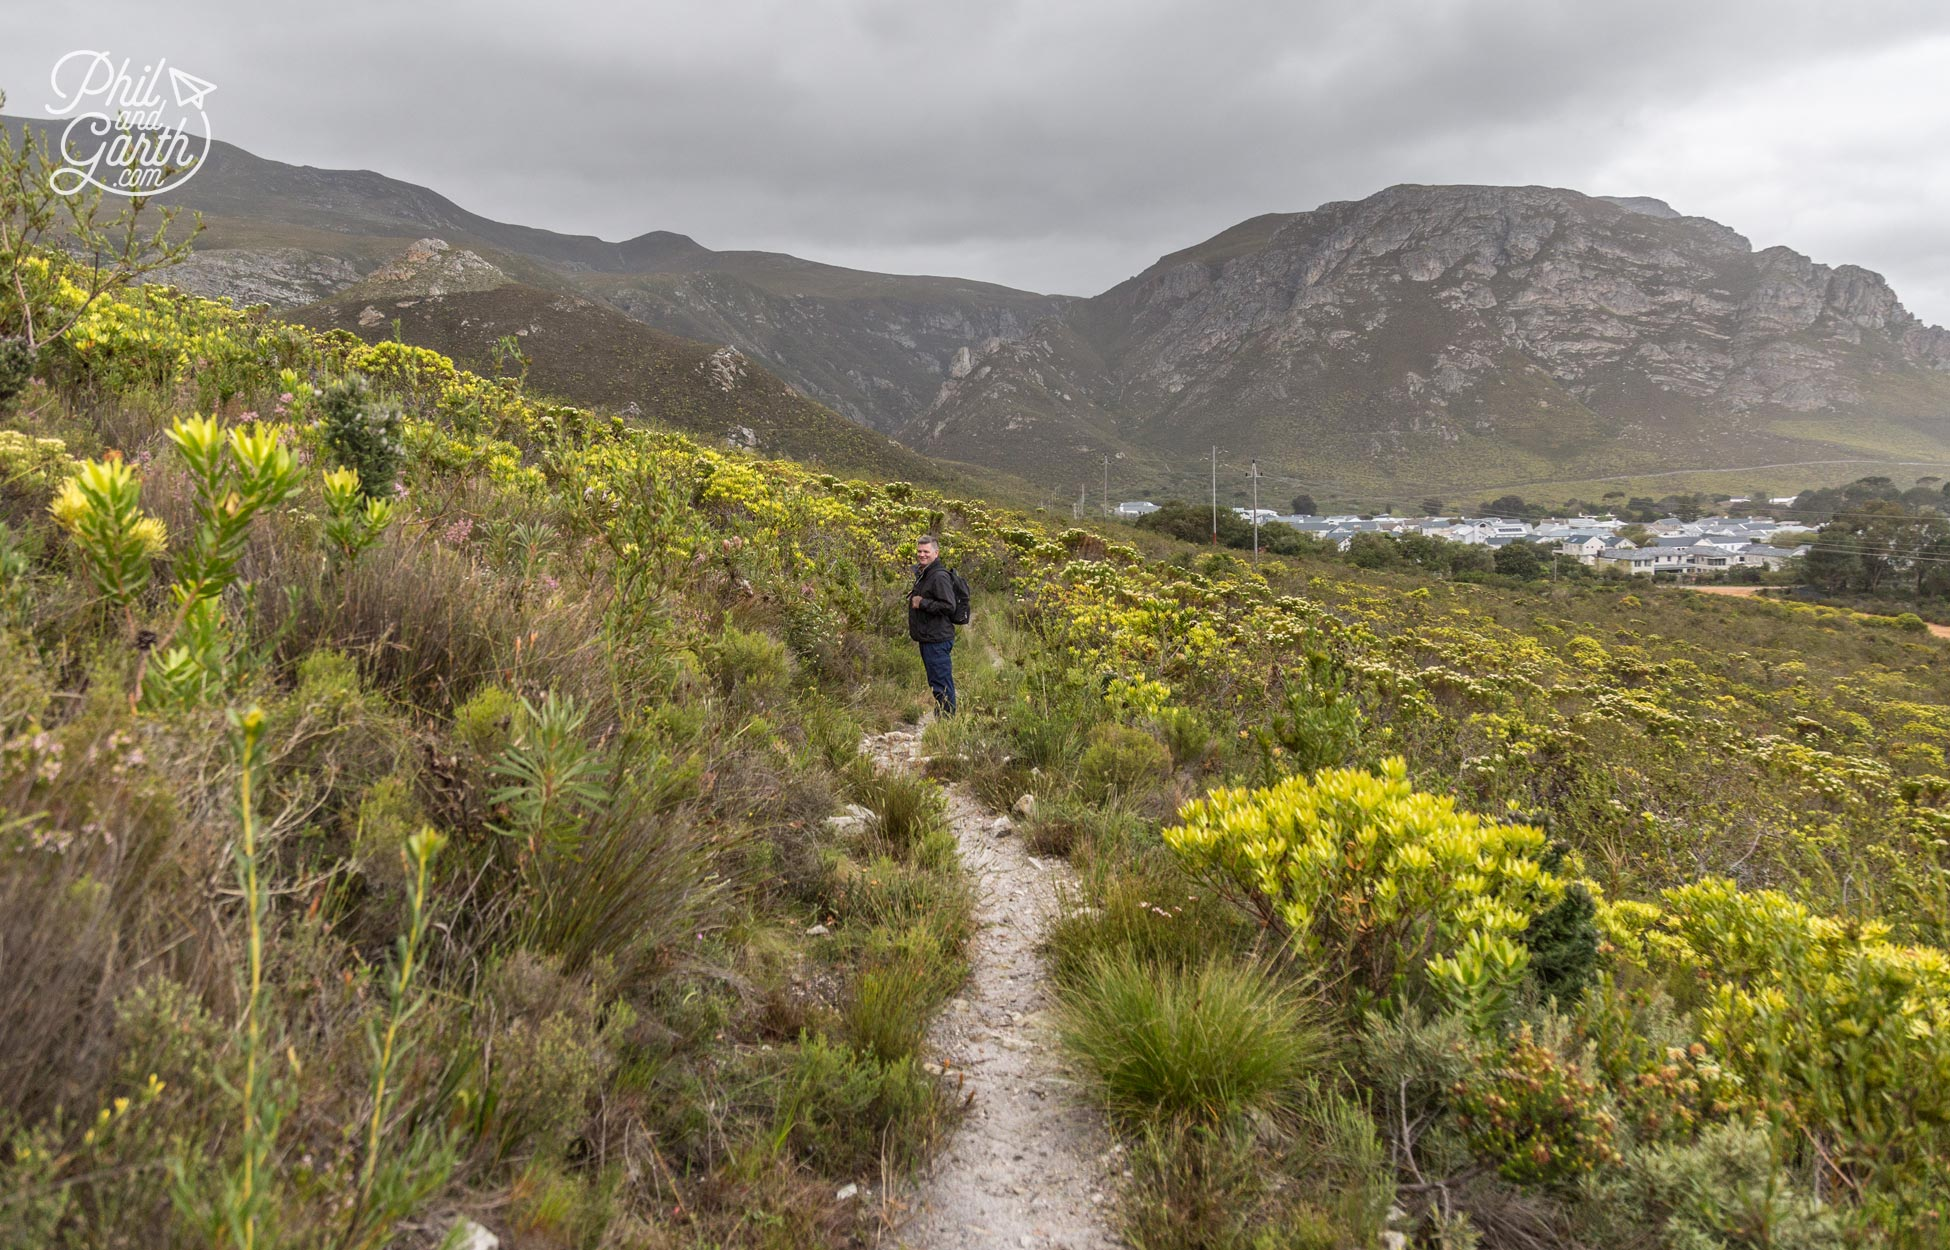 Phil on one of the walking trails of Fernkloof Nature Reserve